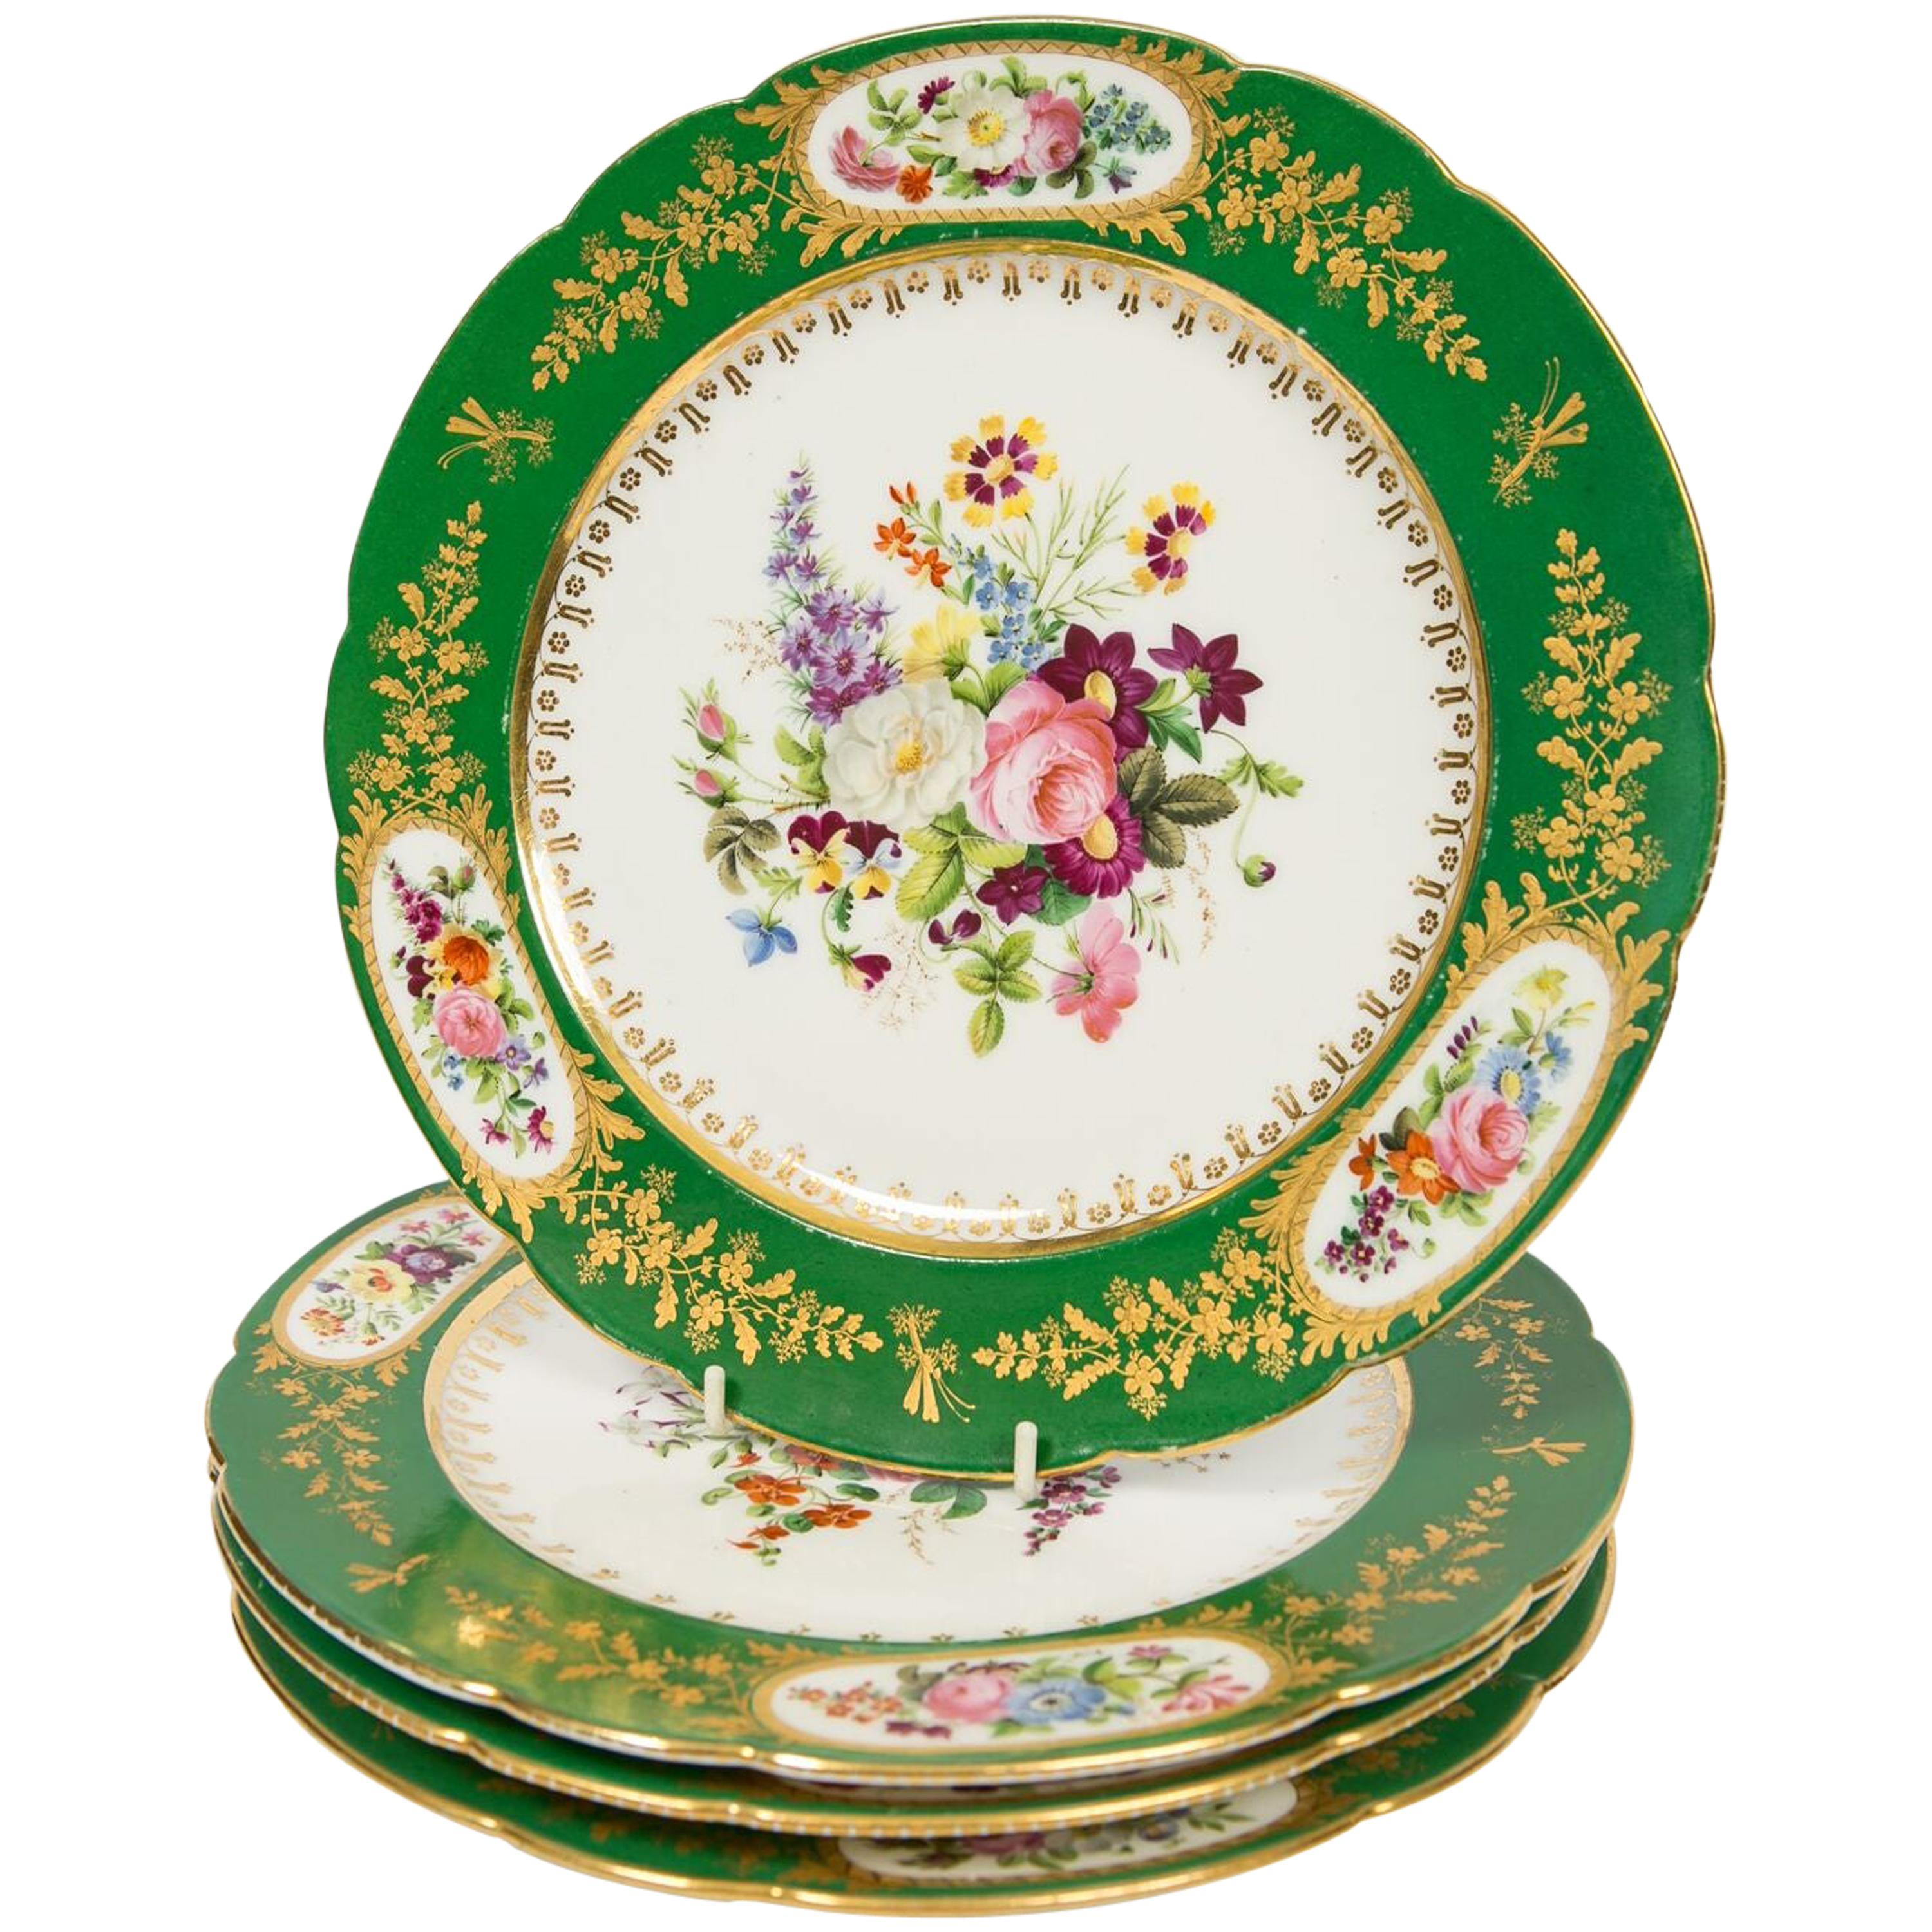 Antique French Paris Porcelain Dishes a Set of Four, Early 19th Century